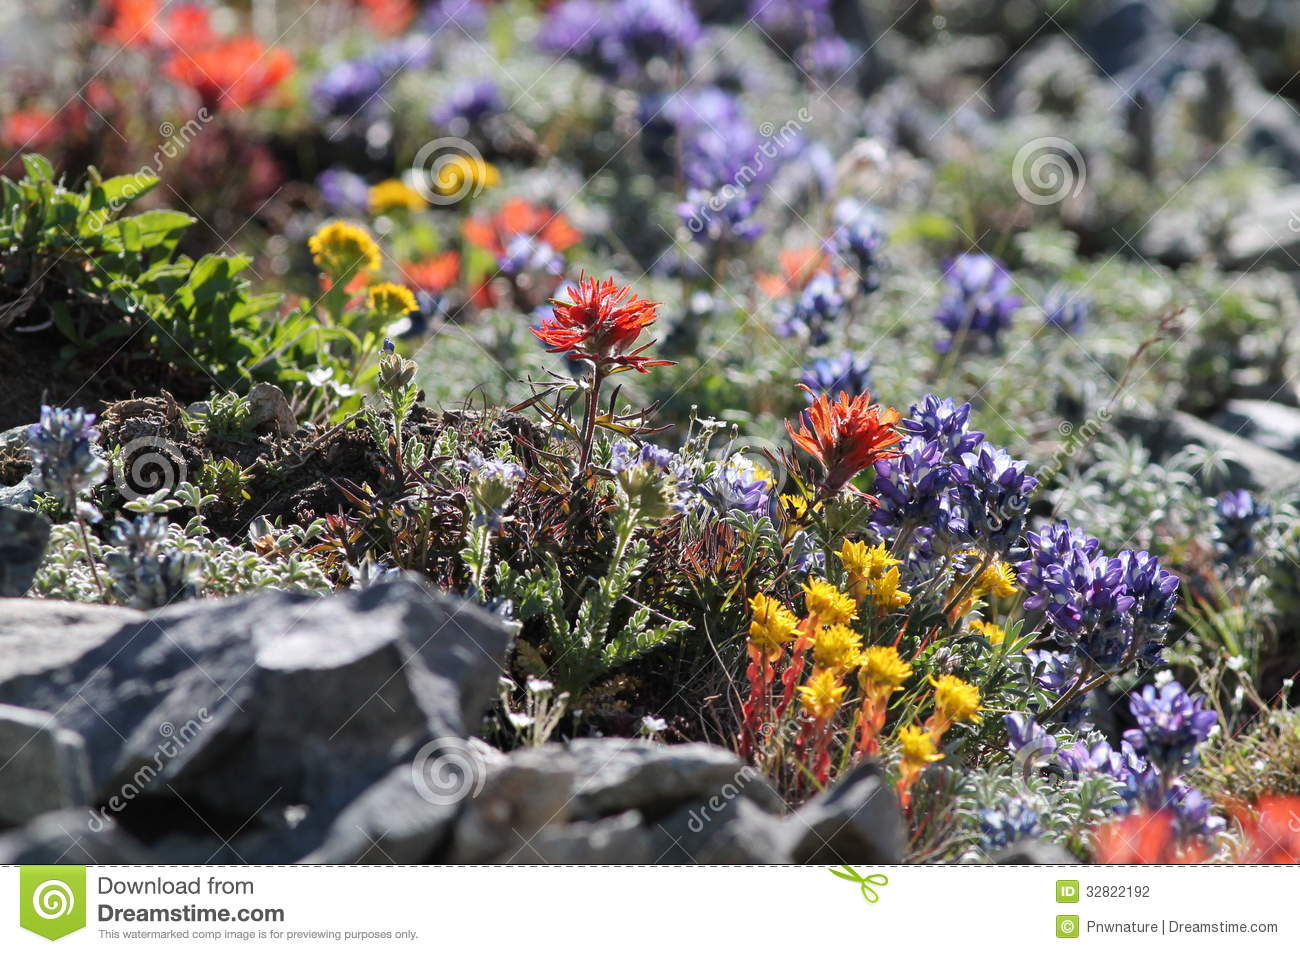 Hauts Wildflowers alpins